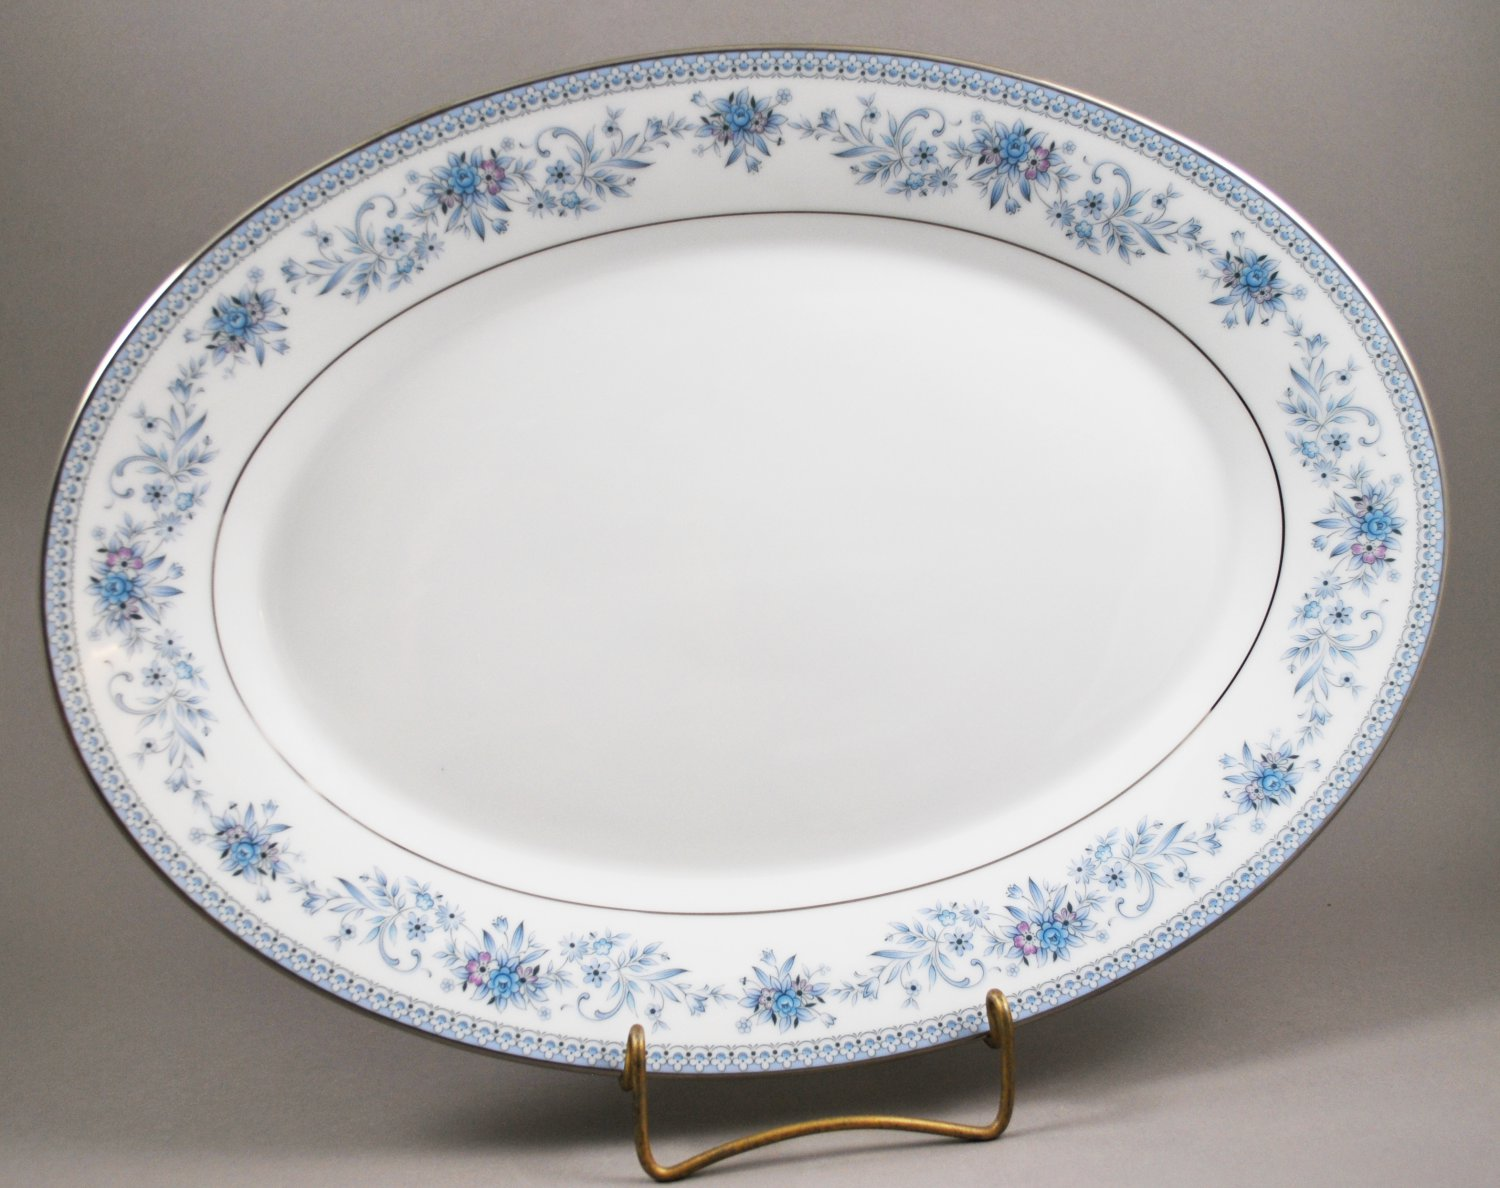 Noritake China Blue Hill 2482 Oval Meat Platter or Vegetable Plate